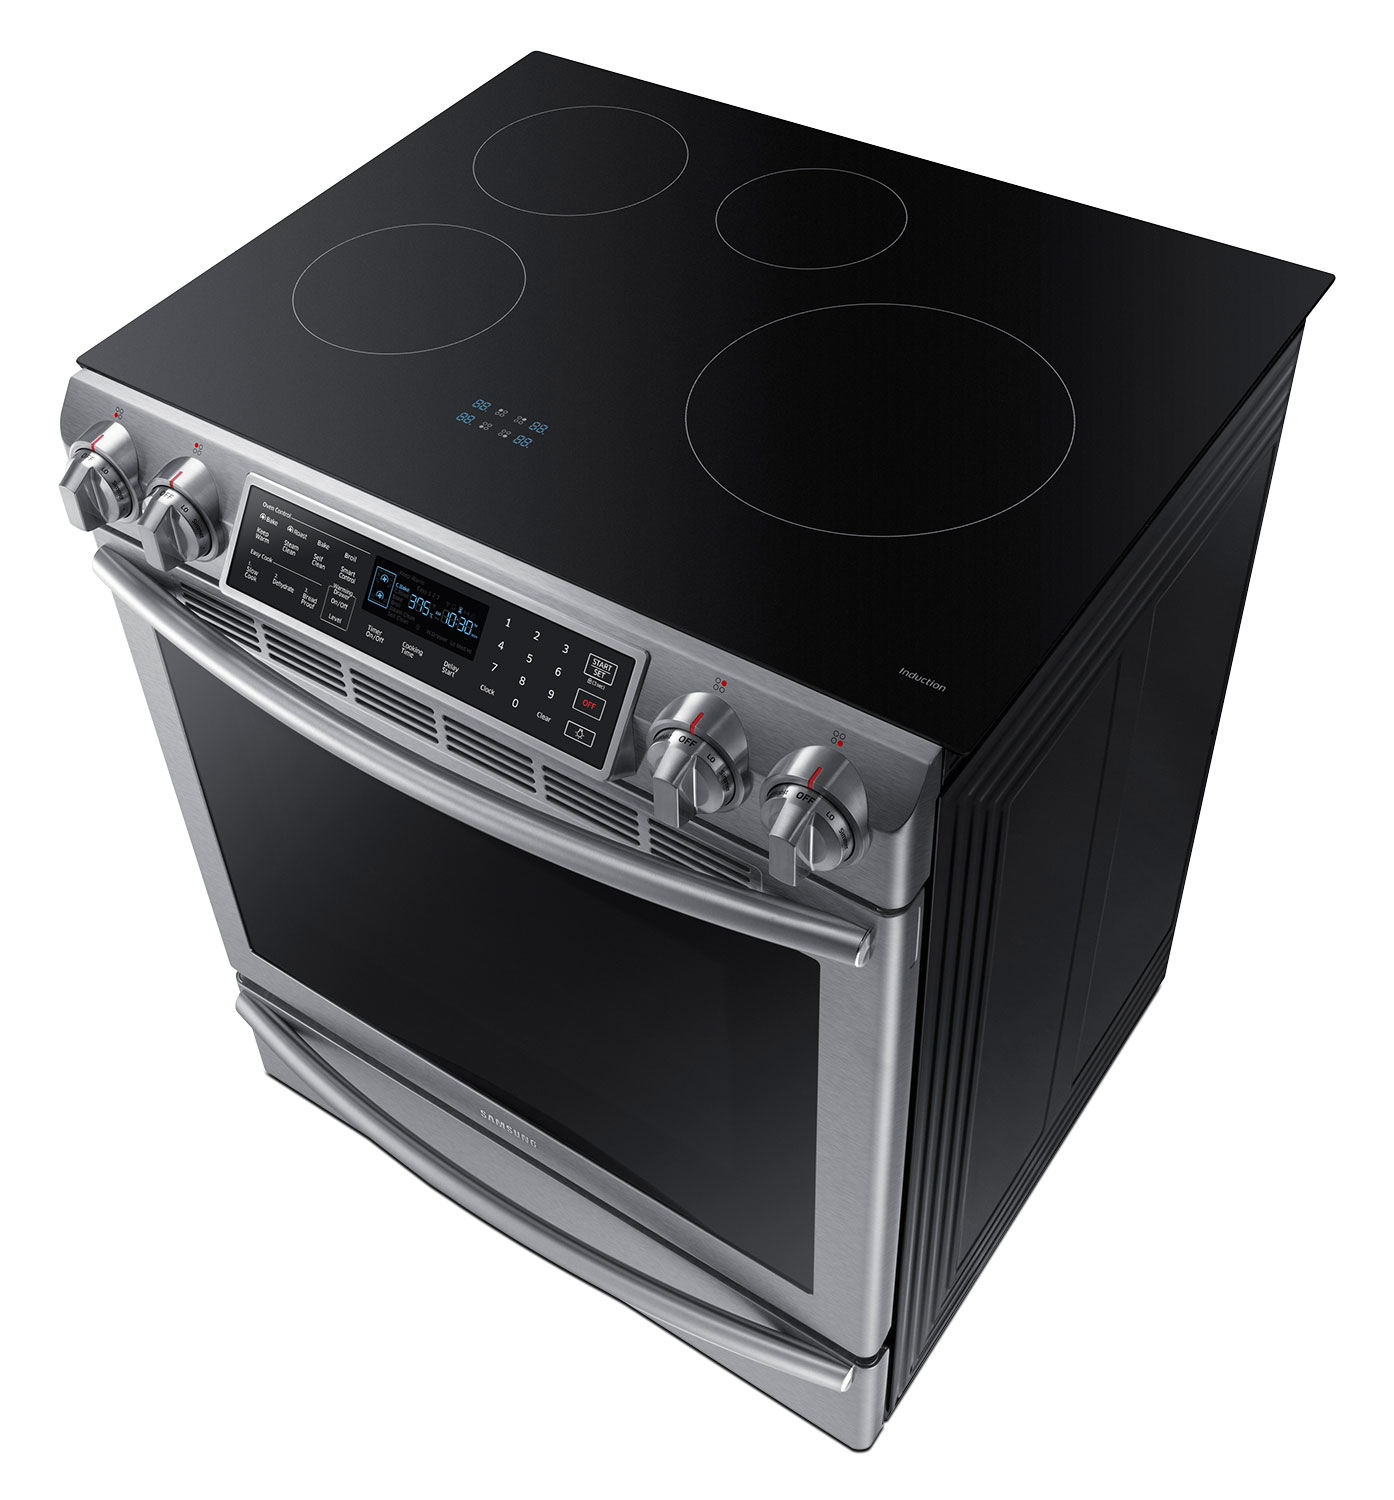 Samsung slide in stainless steel induction range 5 8 cu Samsung induction range